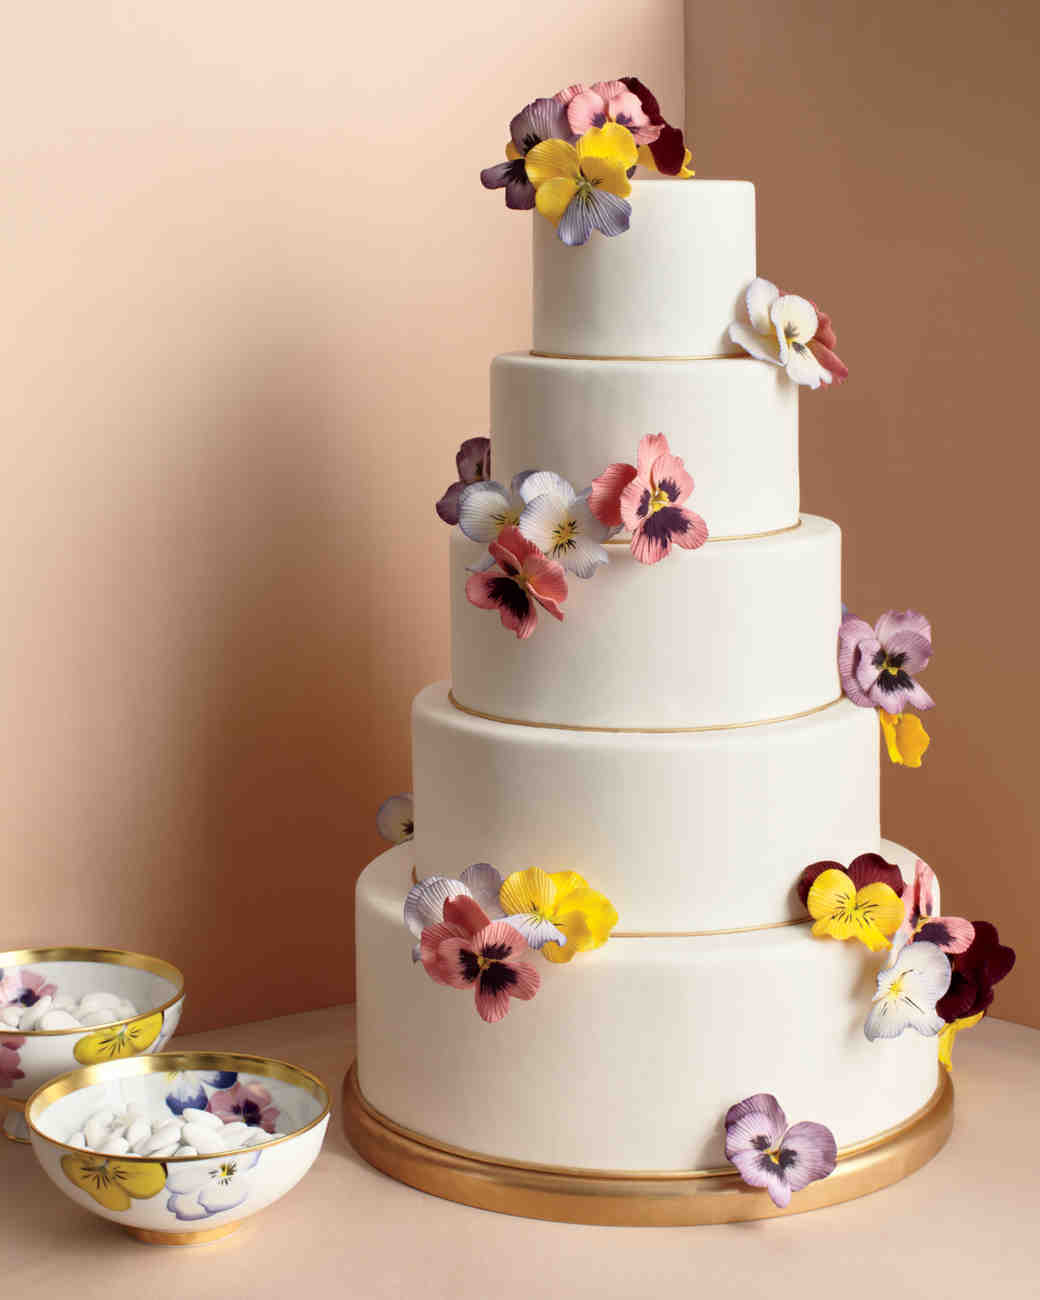 Five-Tiered White Wedding Cake with Painted Sugar Pansies